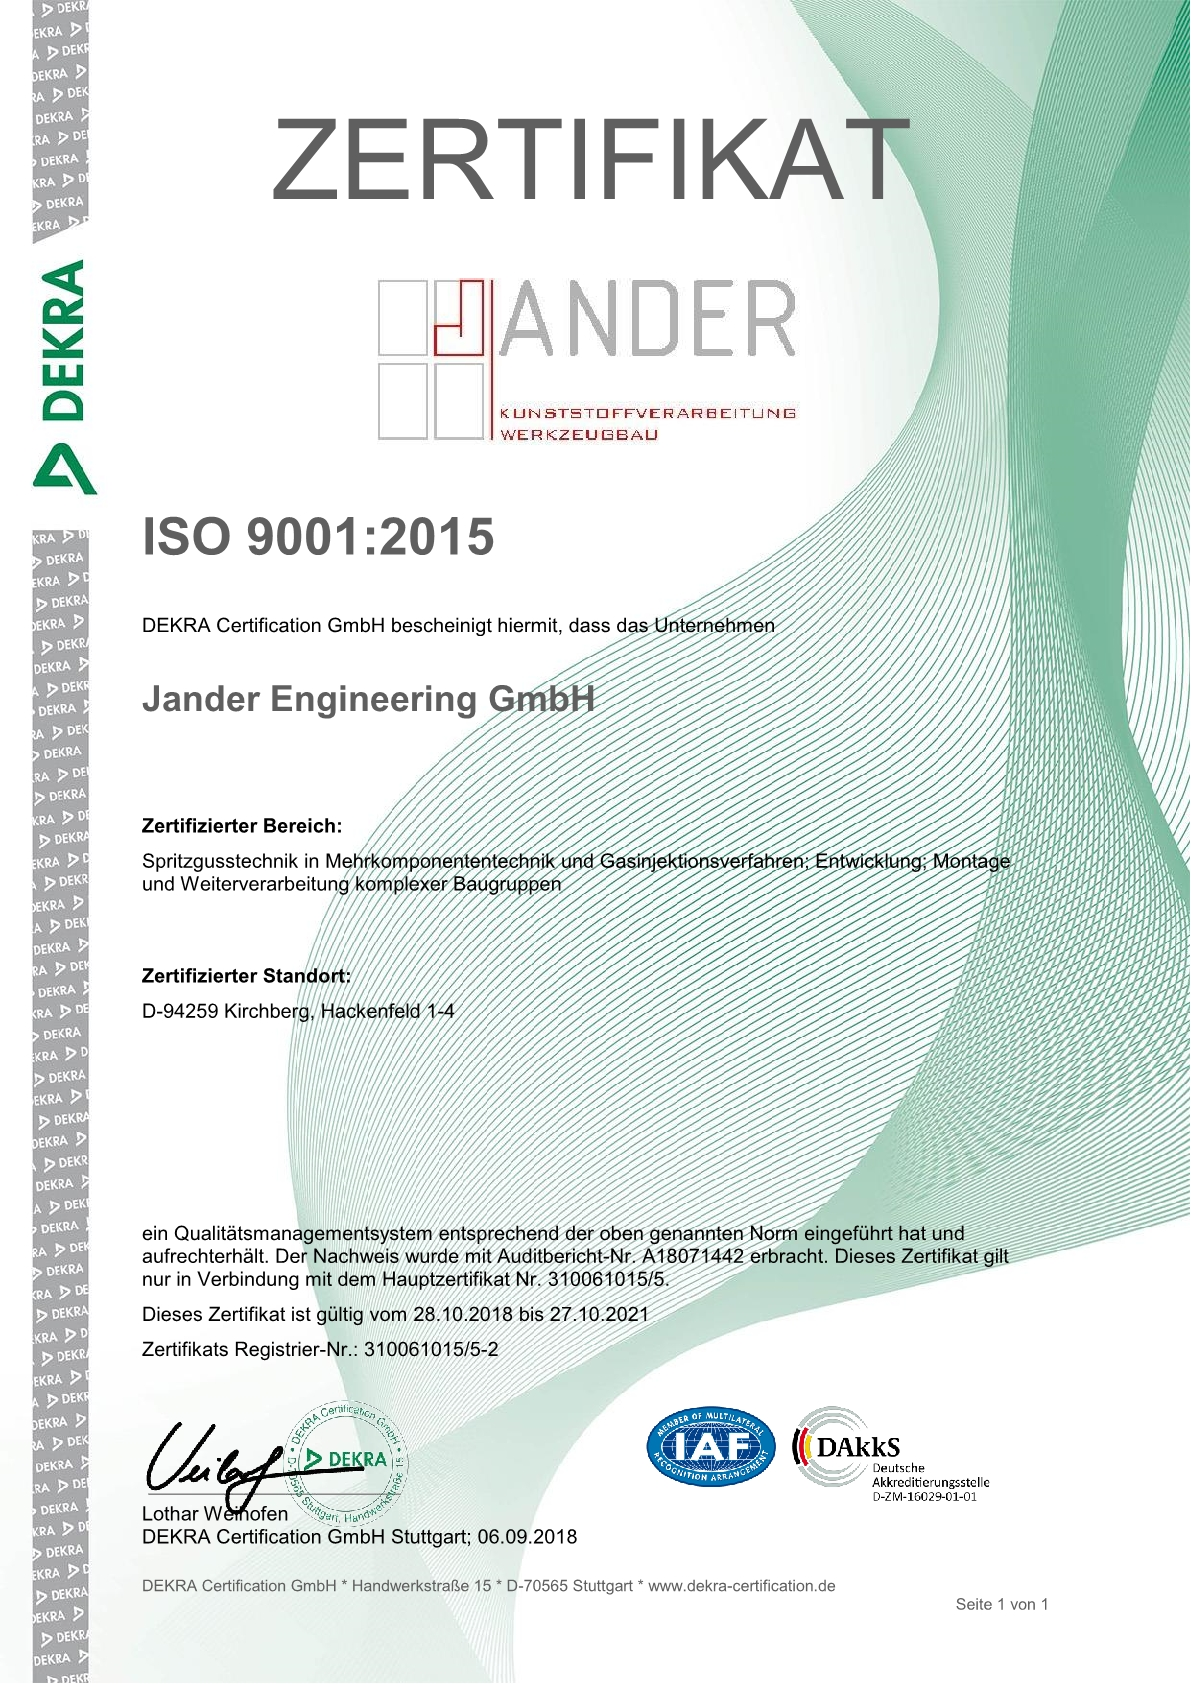 Zertifikat Jander Engineering GmbH